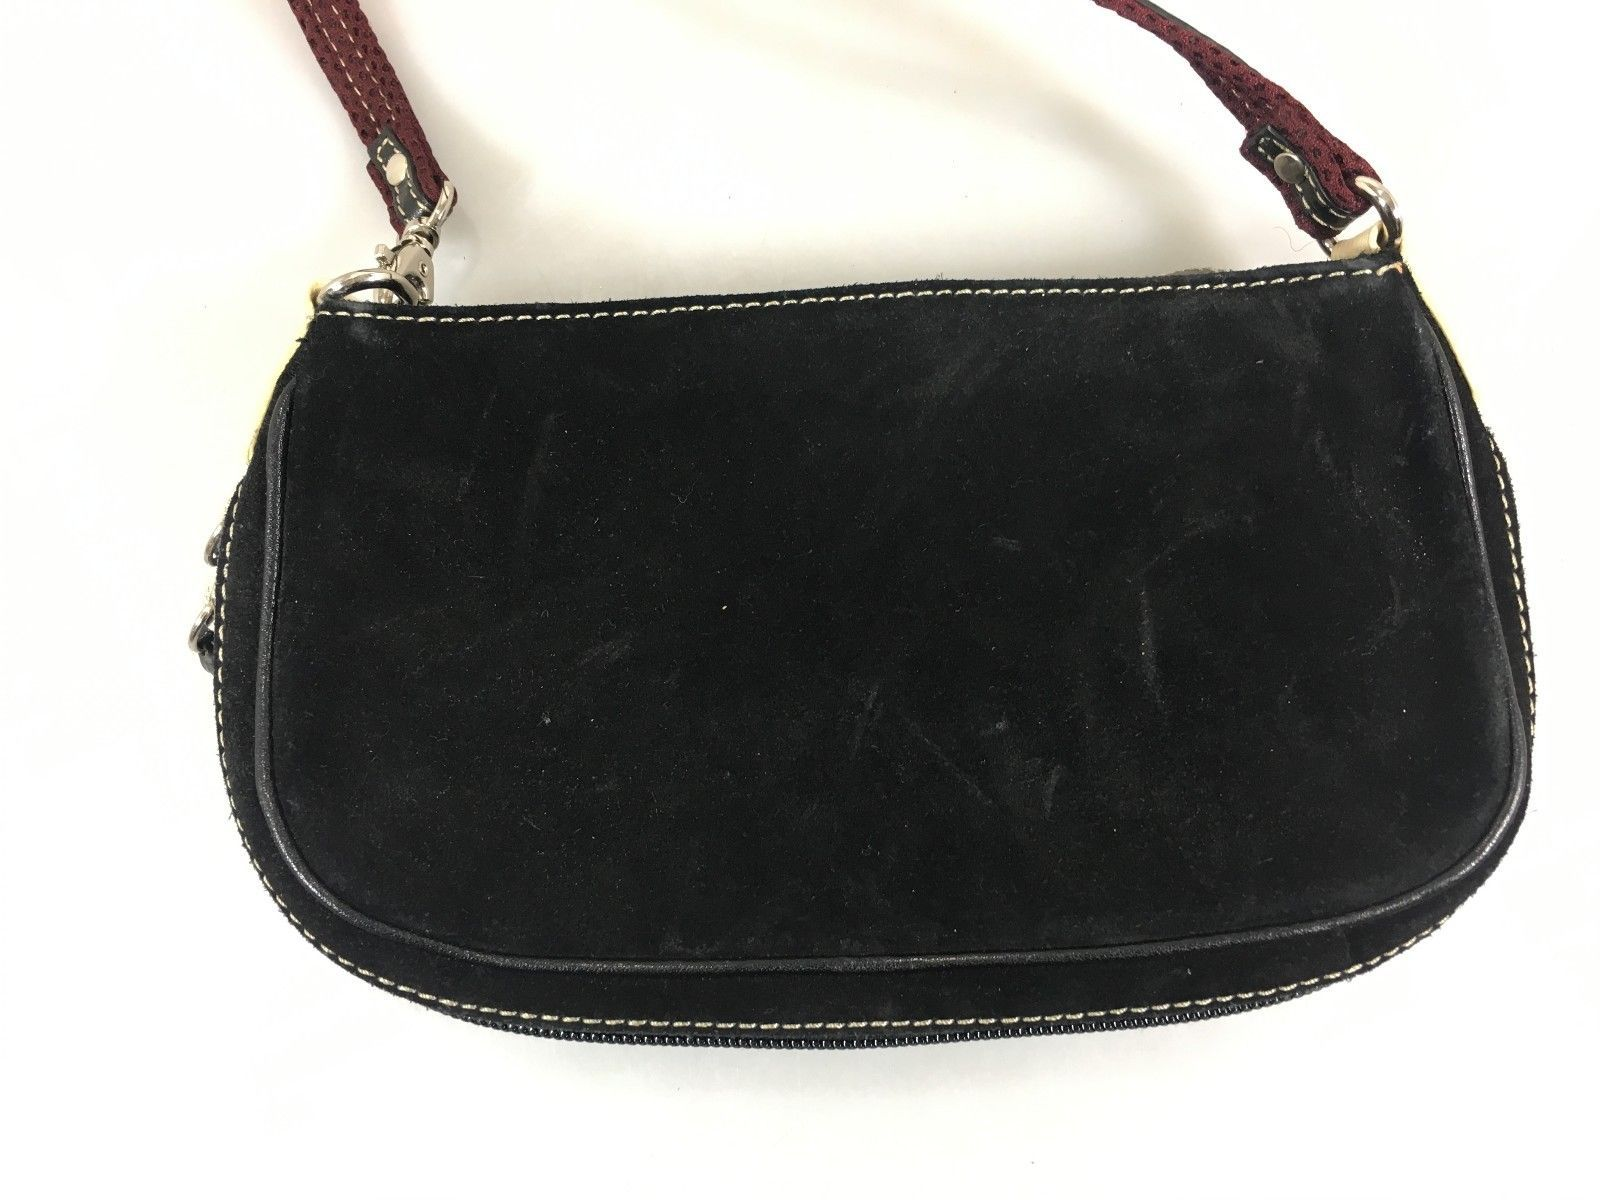 Cole Haan Bag: 2 customer reviews and 39 listings